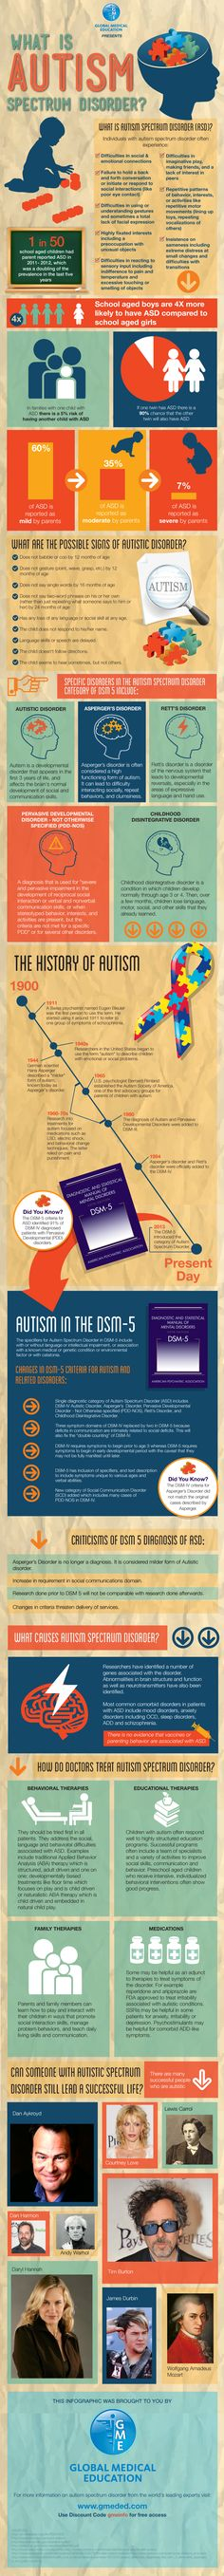 This infographic looks at what is Autism including what is the relationship of vaccines and autism or what are the best treatments for Autism including types of therapies for Autism.